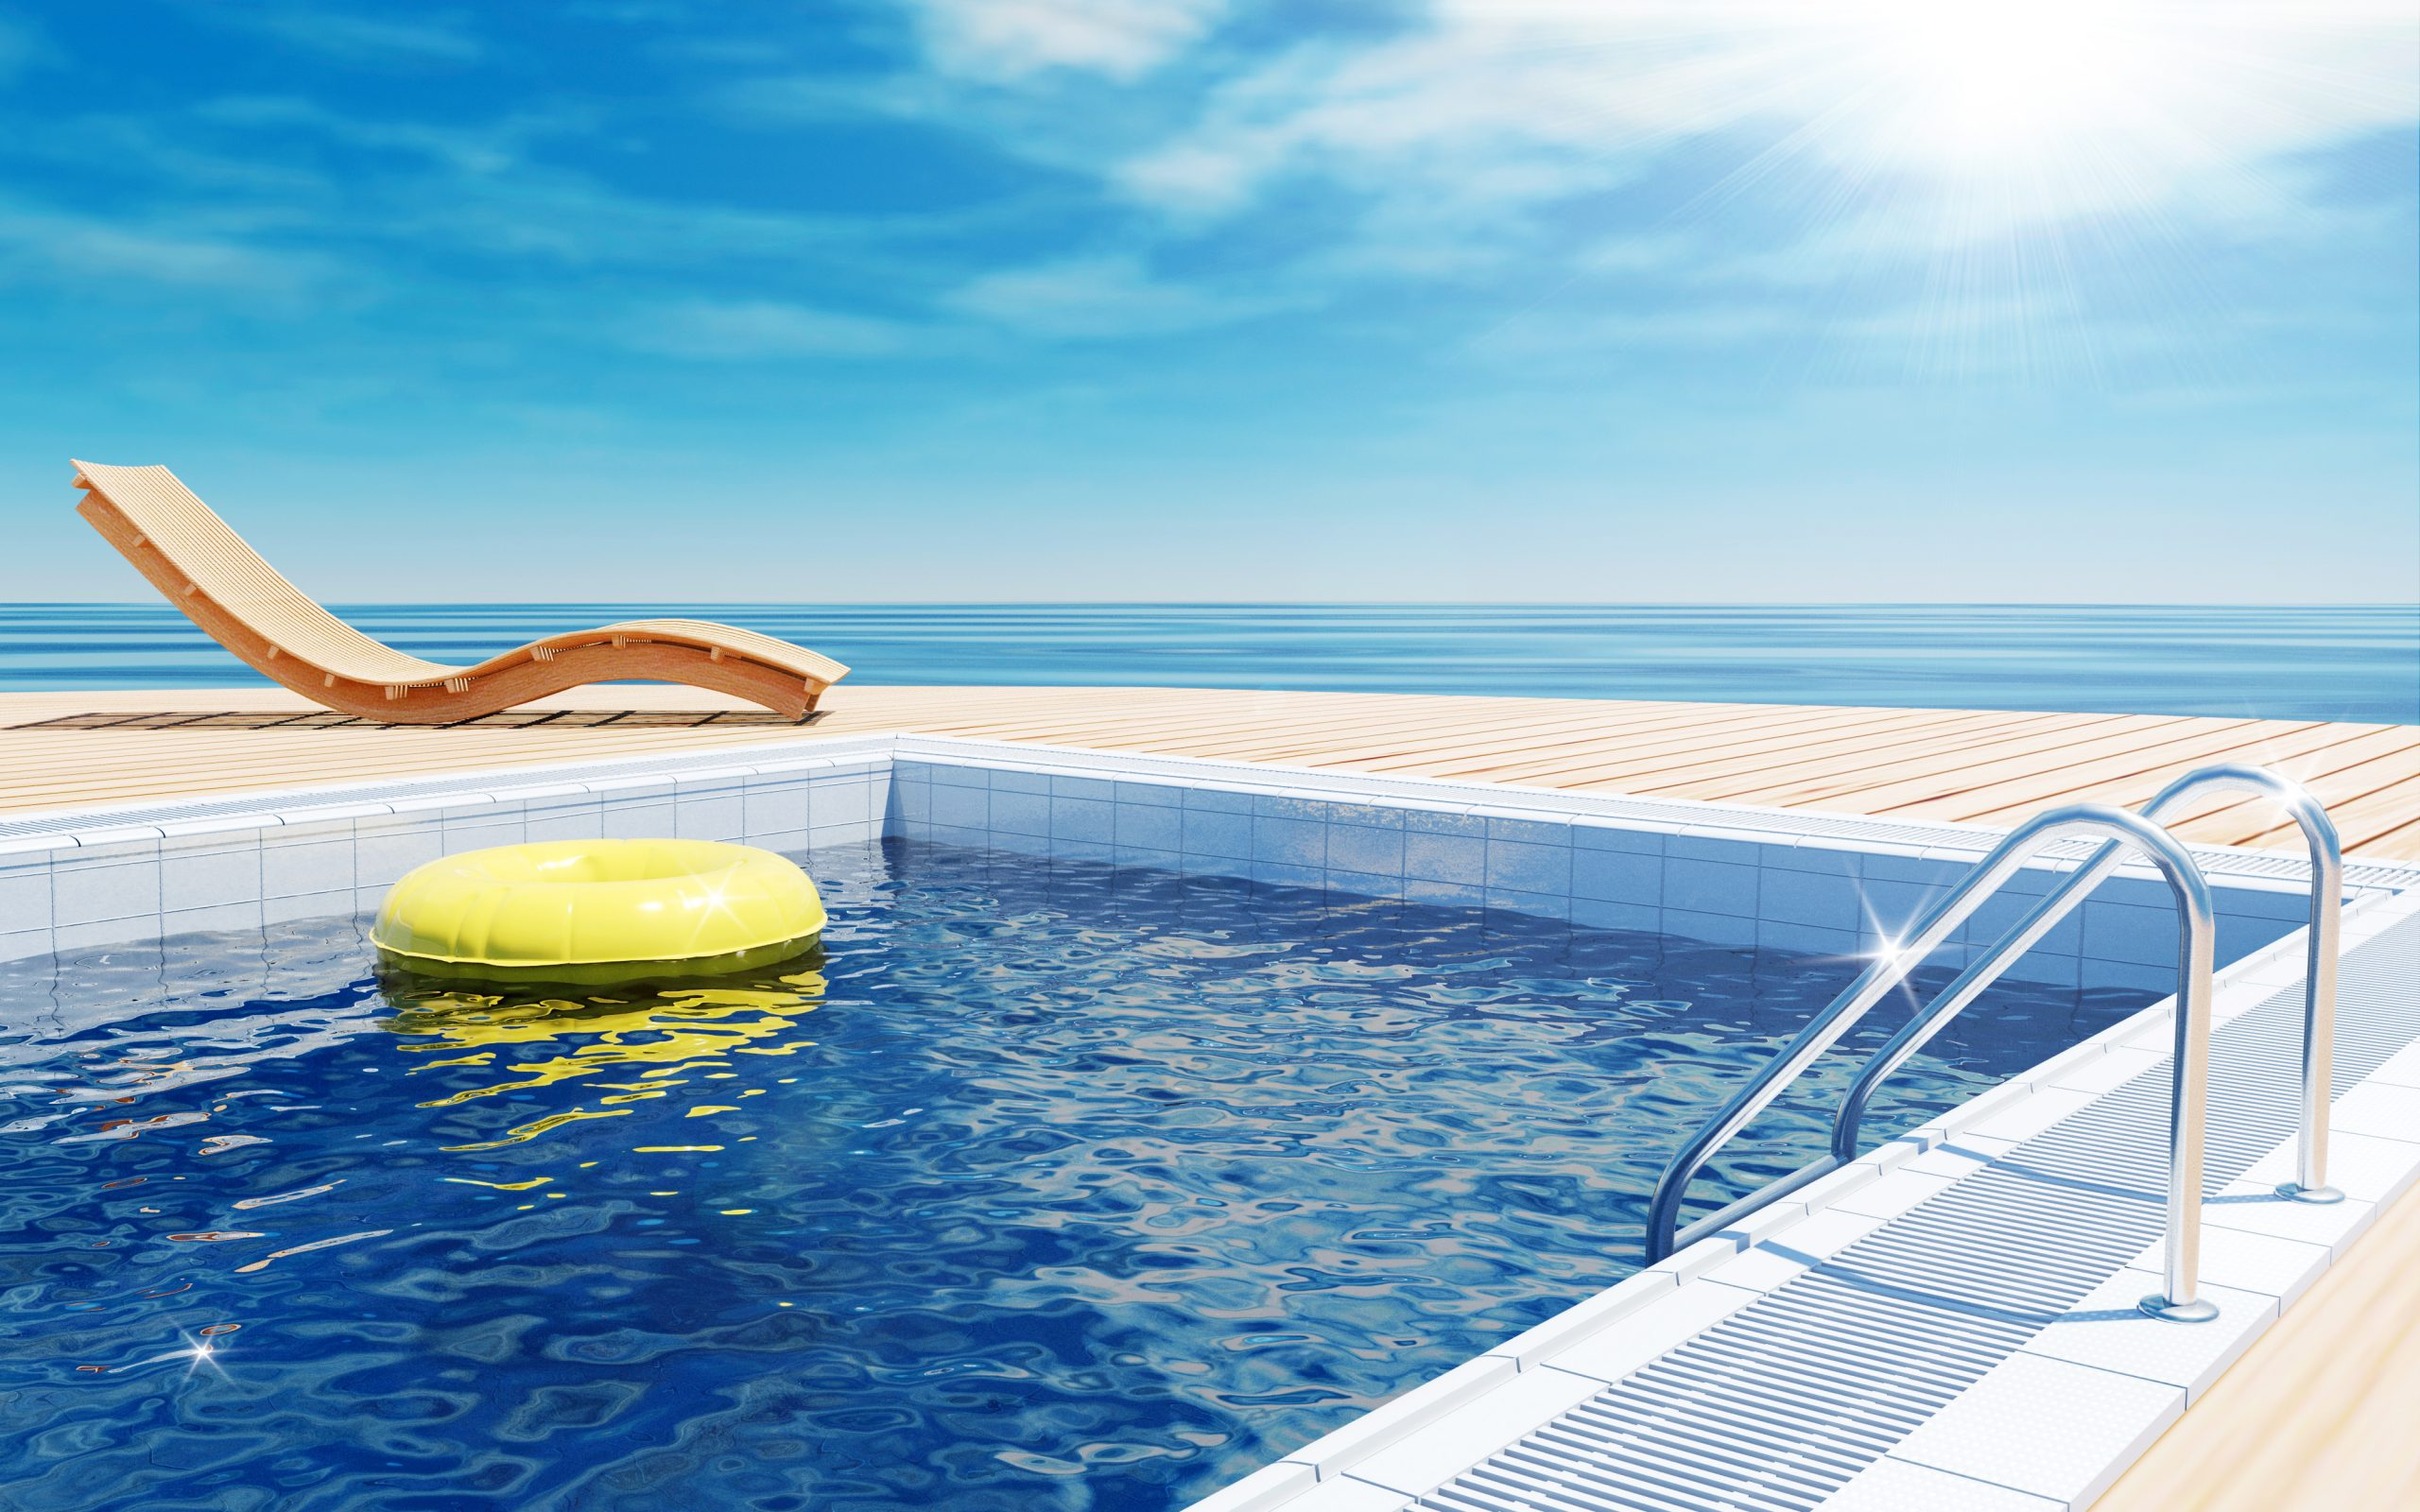 How To Make My Pool Water Blue